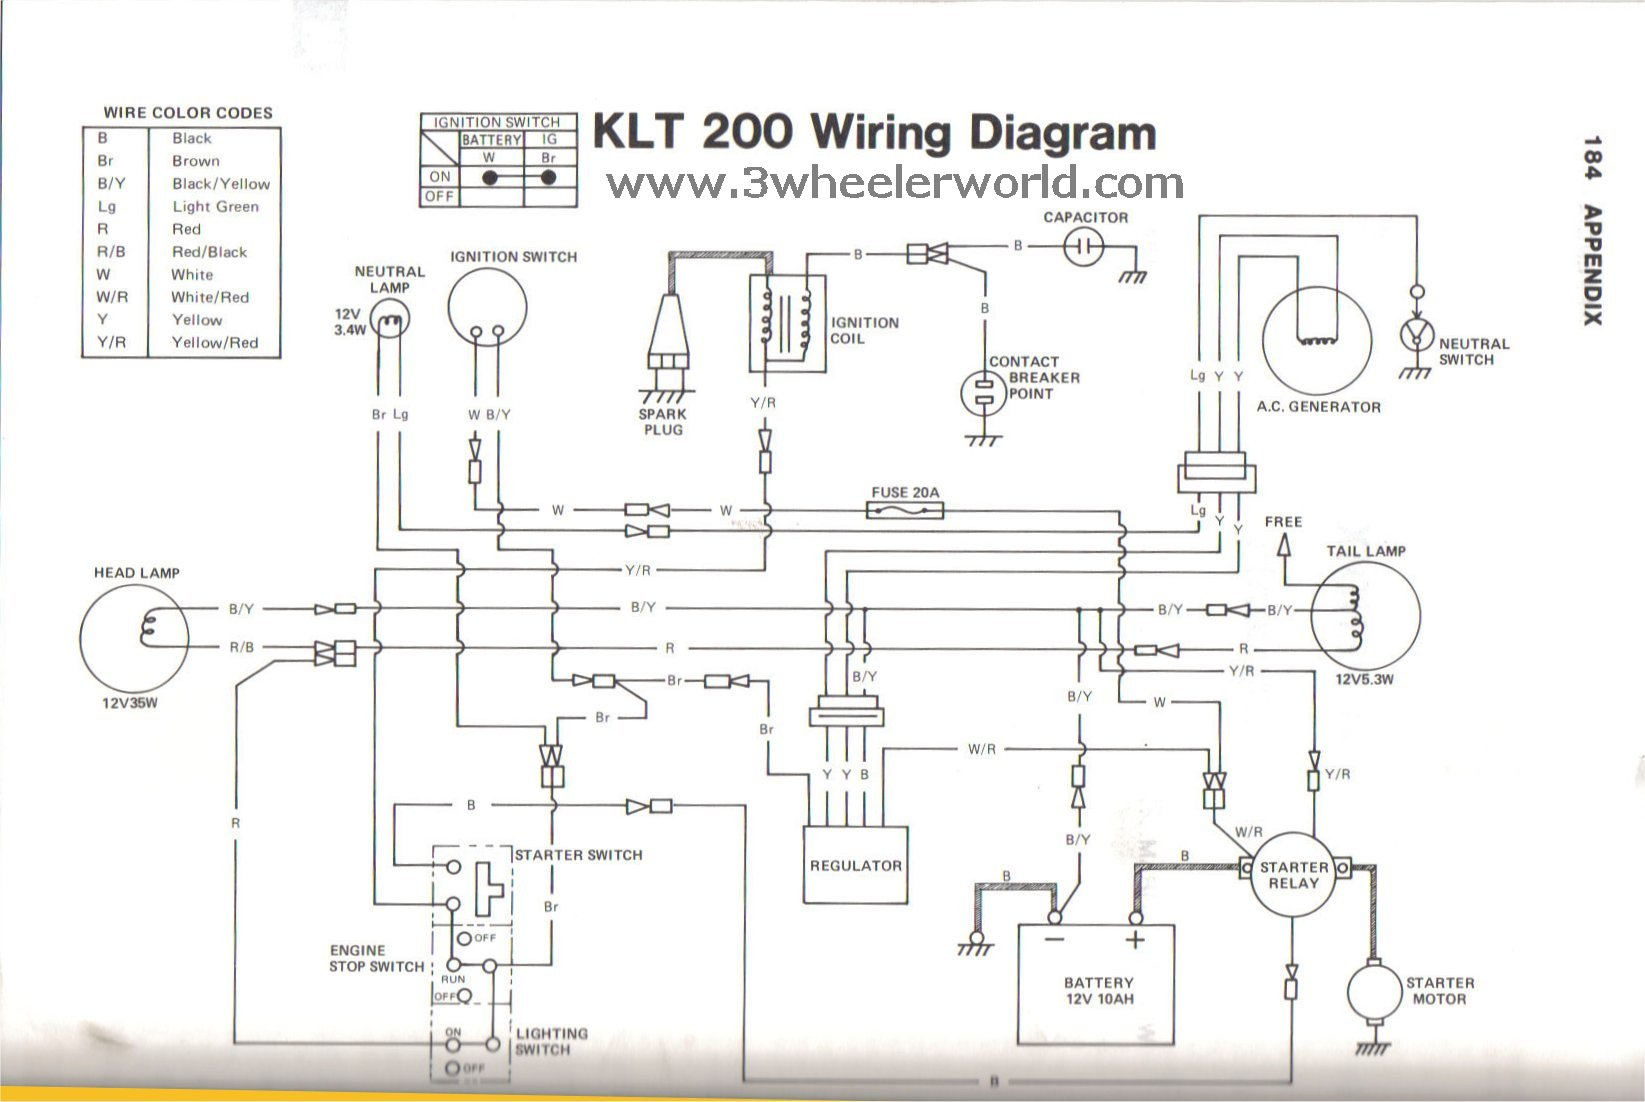 KLT200WiringDiagram1 kawasaki wiring diagram atv kawasaki wiring diagrams instruction Kawasaki KLF Bayou 400 at fashall.co